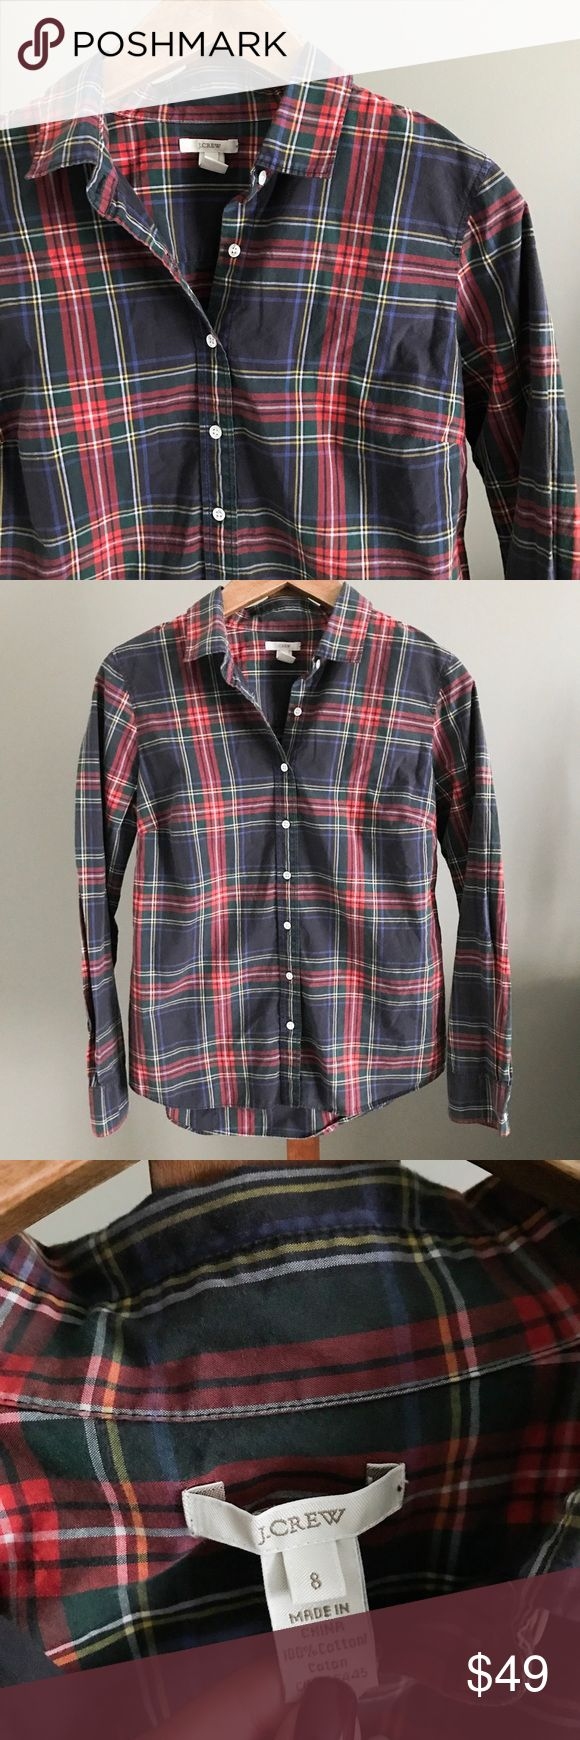 J. Crew Tartan Plaid Perfect Shirt The classic and iconic Tartan Plaid shirt from J. Crew! This top is a blogger favorite. This is the original version from the retail store, not the lower-quality outlet remake. Size 8 and in perfect condition! J. Crew Tops Button Down Shirts